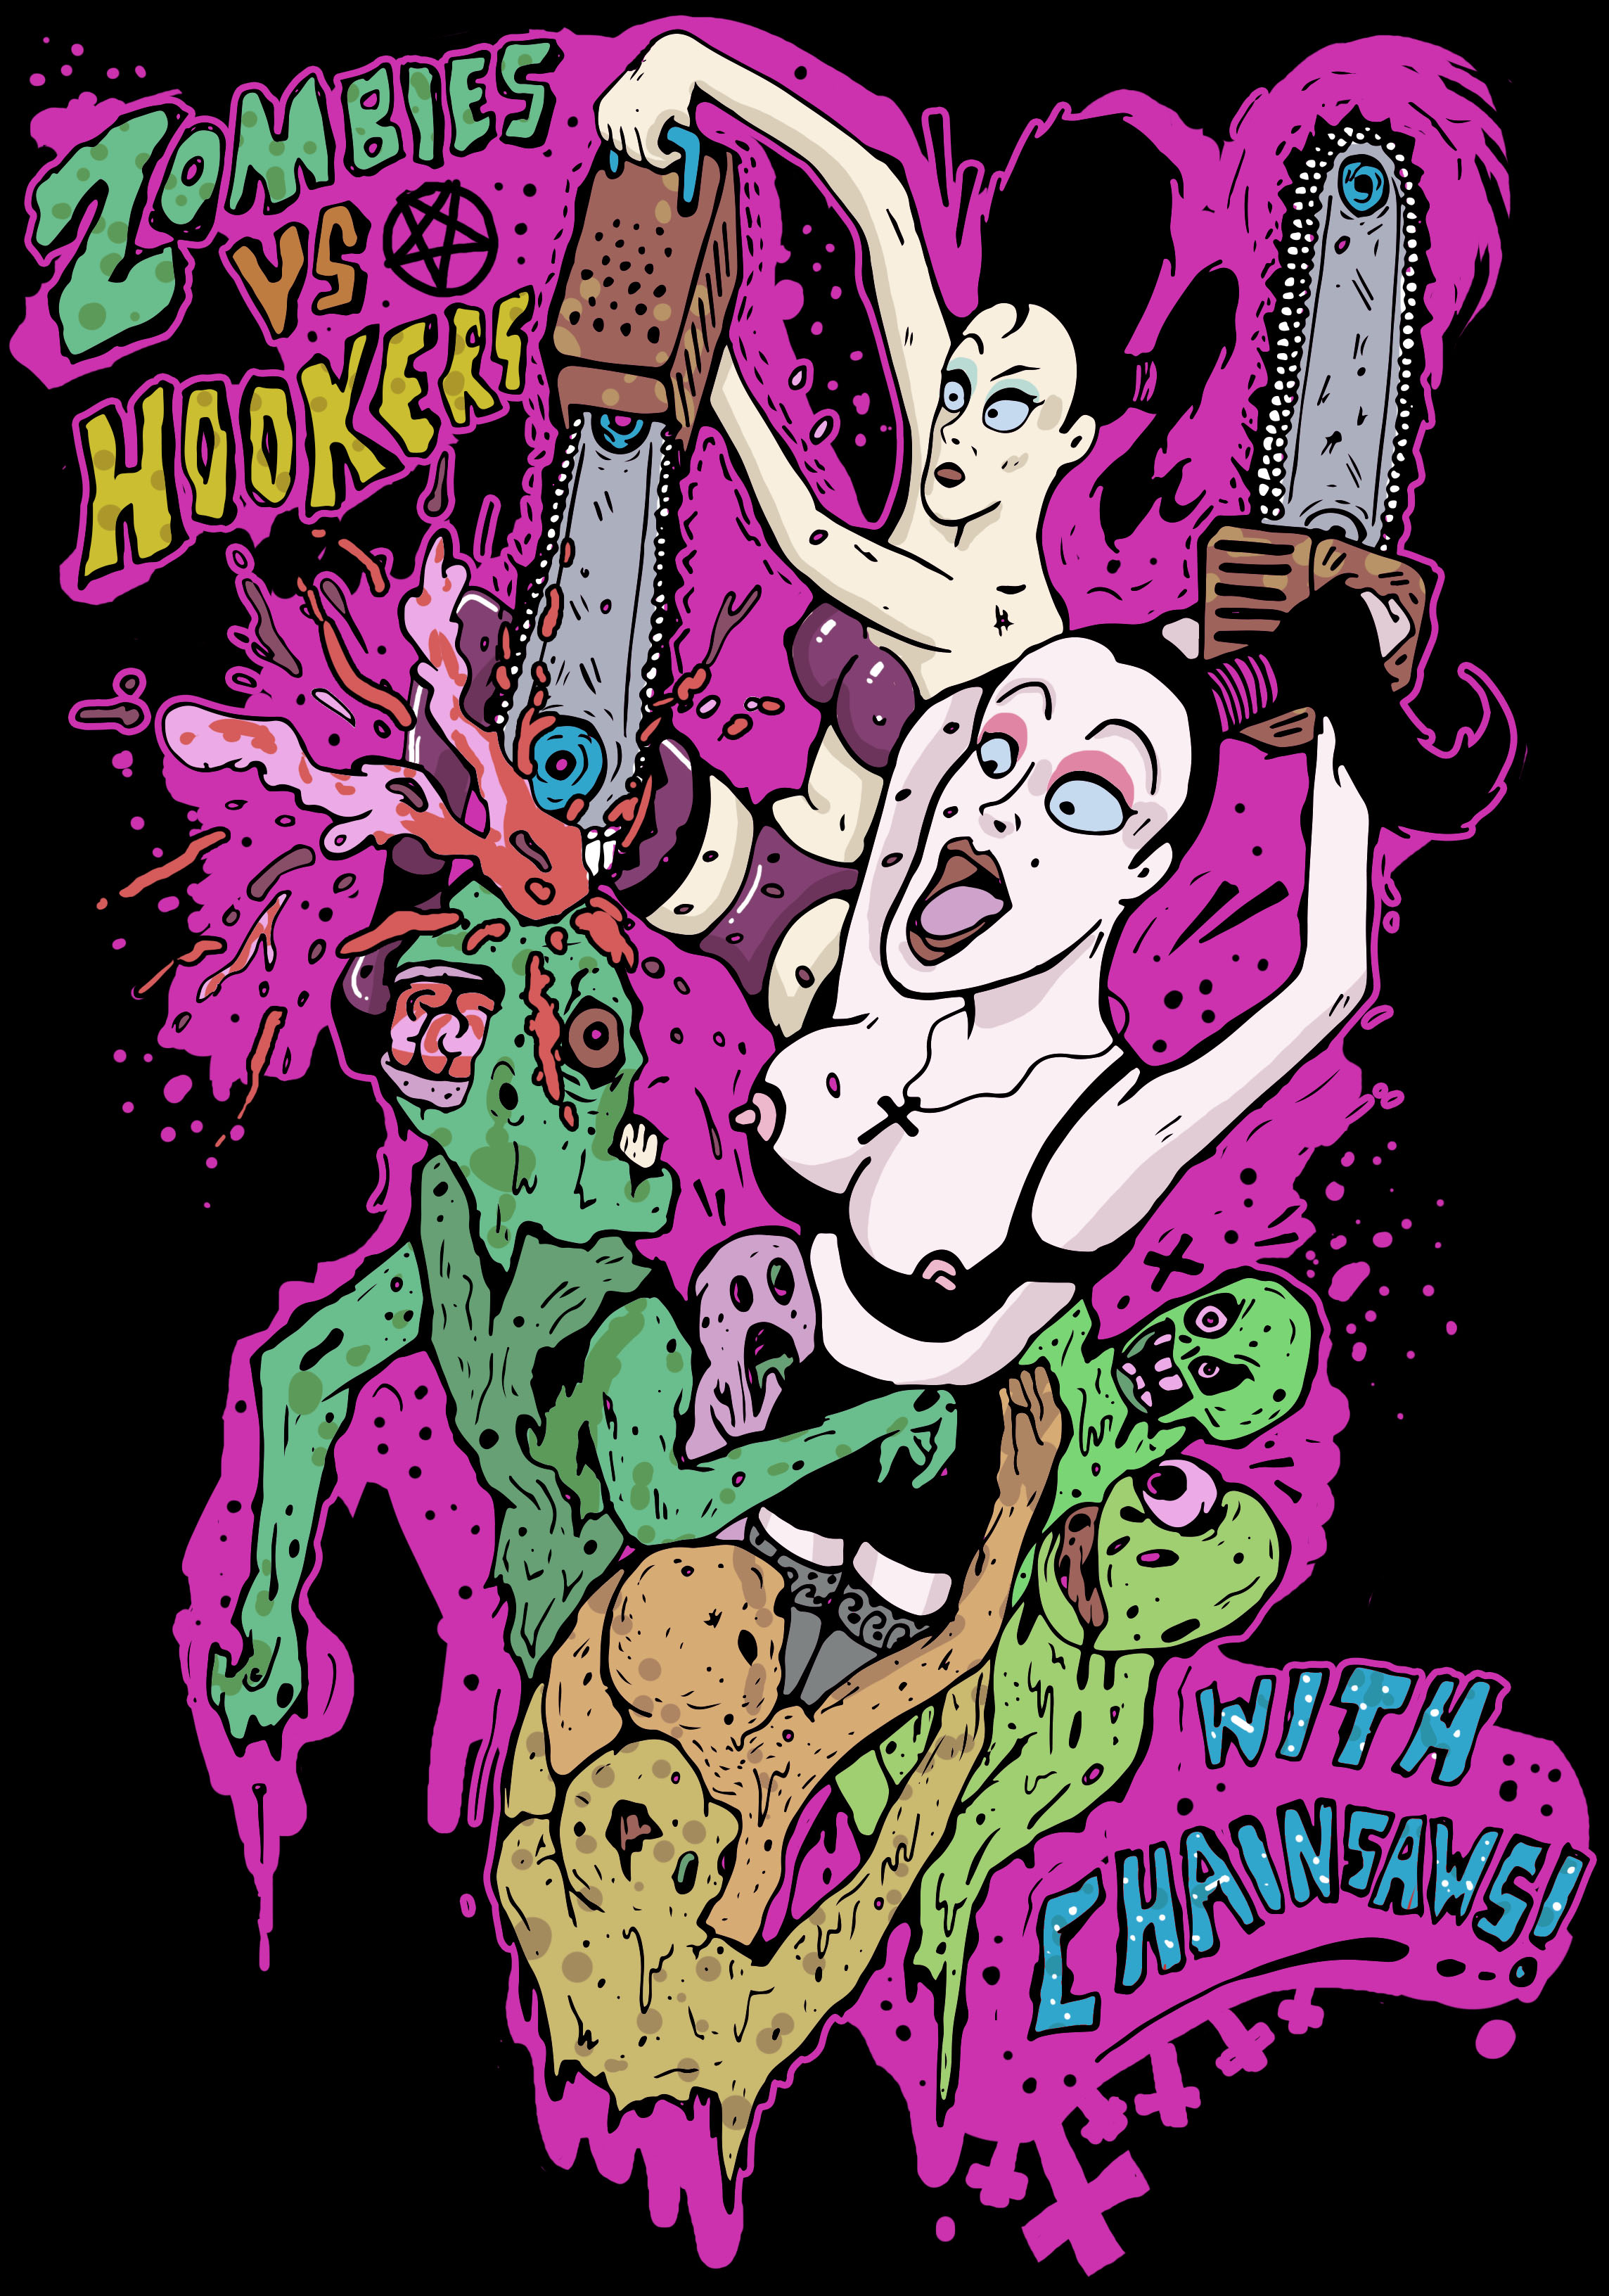 Illustrations by Mike Hughes: hookers.jpg